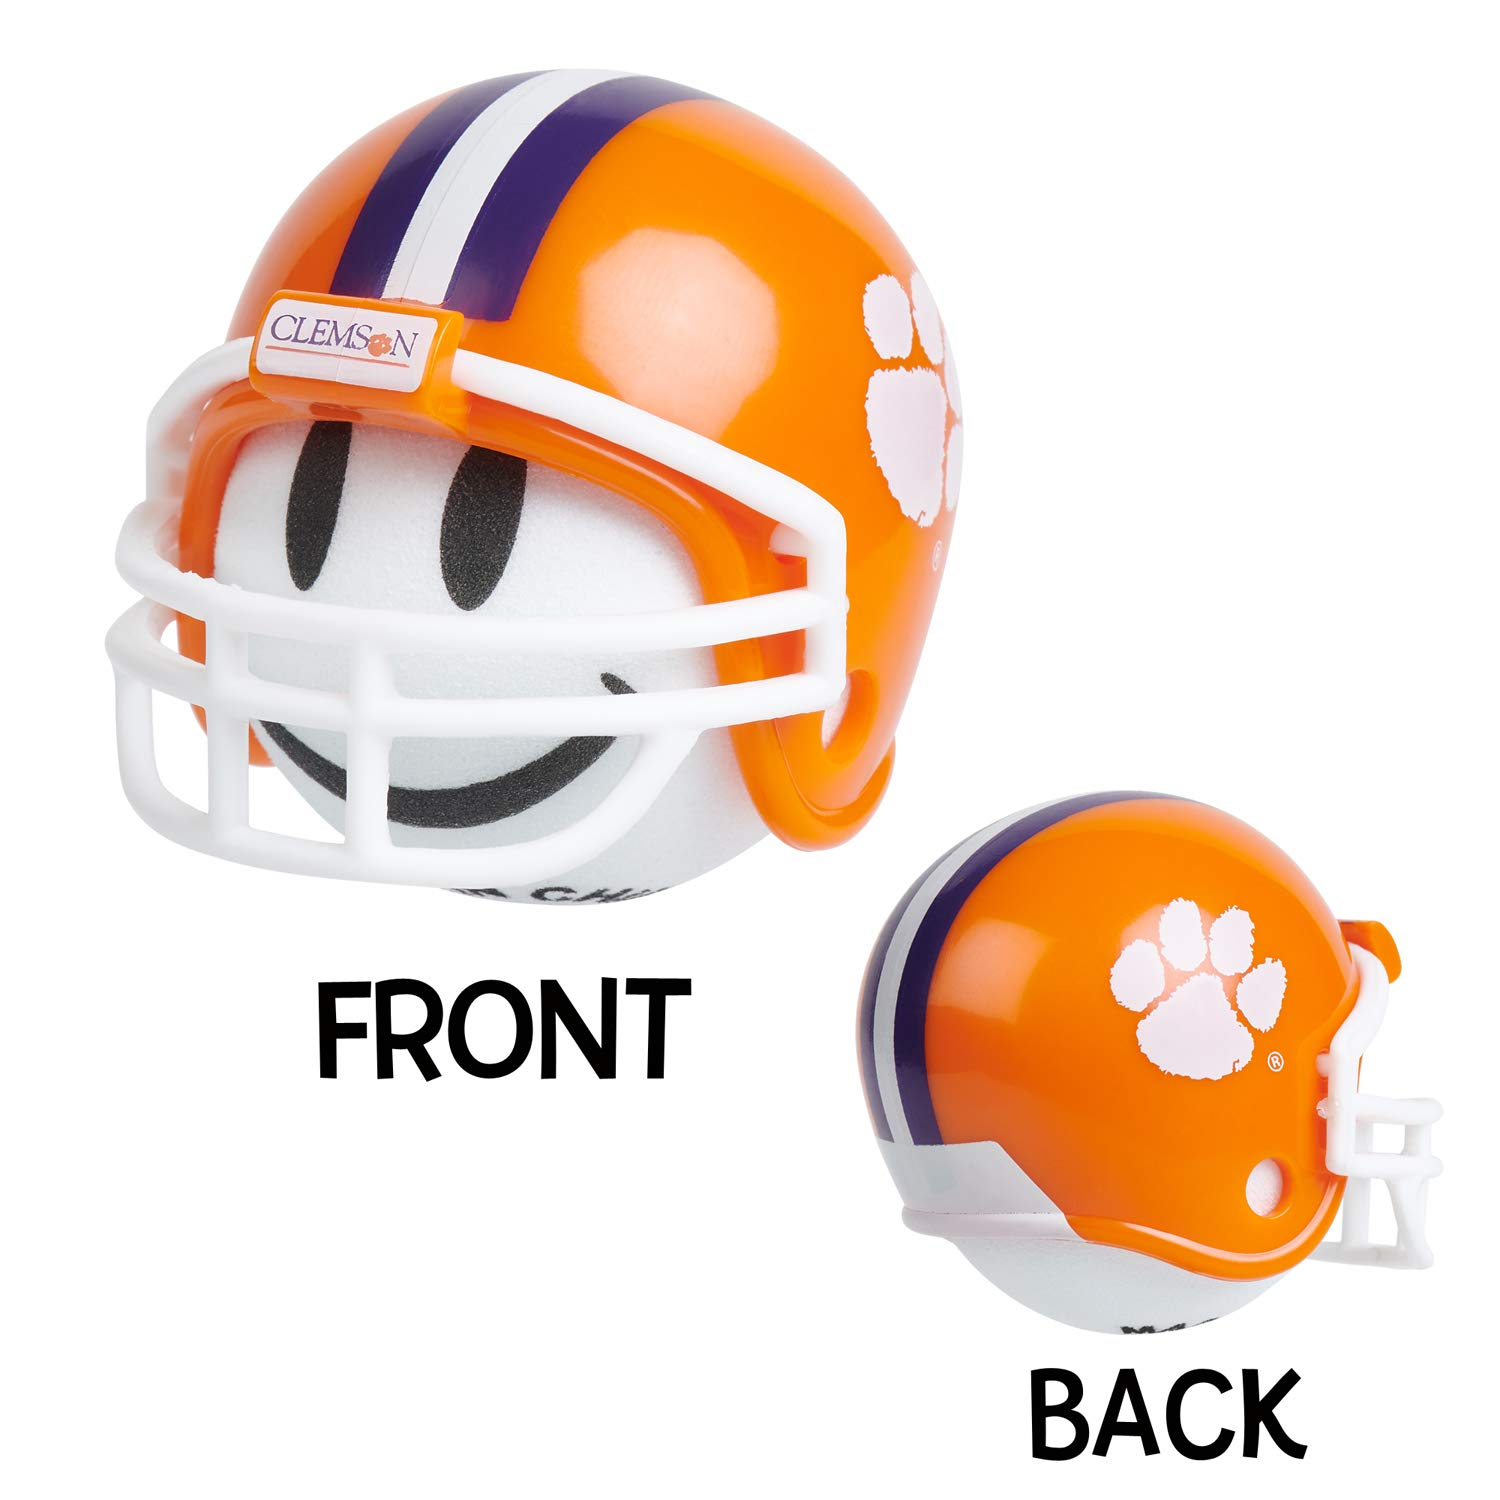 NCAA College Football Clemson Tigers Car Antenna Topper/Rear View Mirror Dangler + Free Happy Face Antenna Ball (White Smiley) (Auto Accessories)